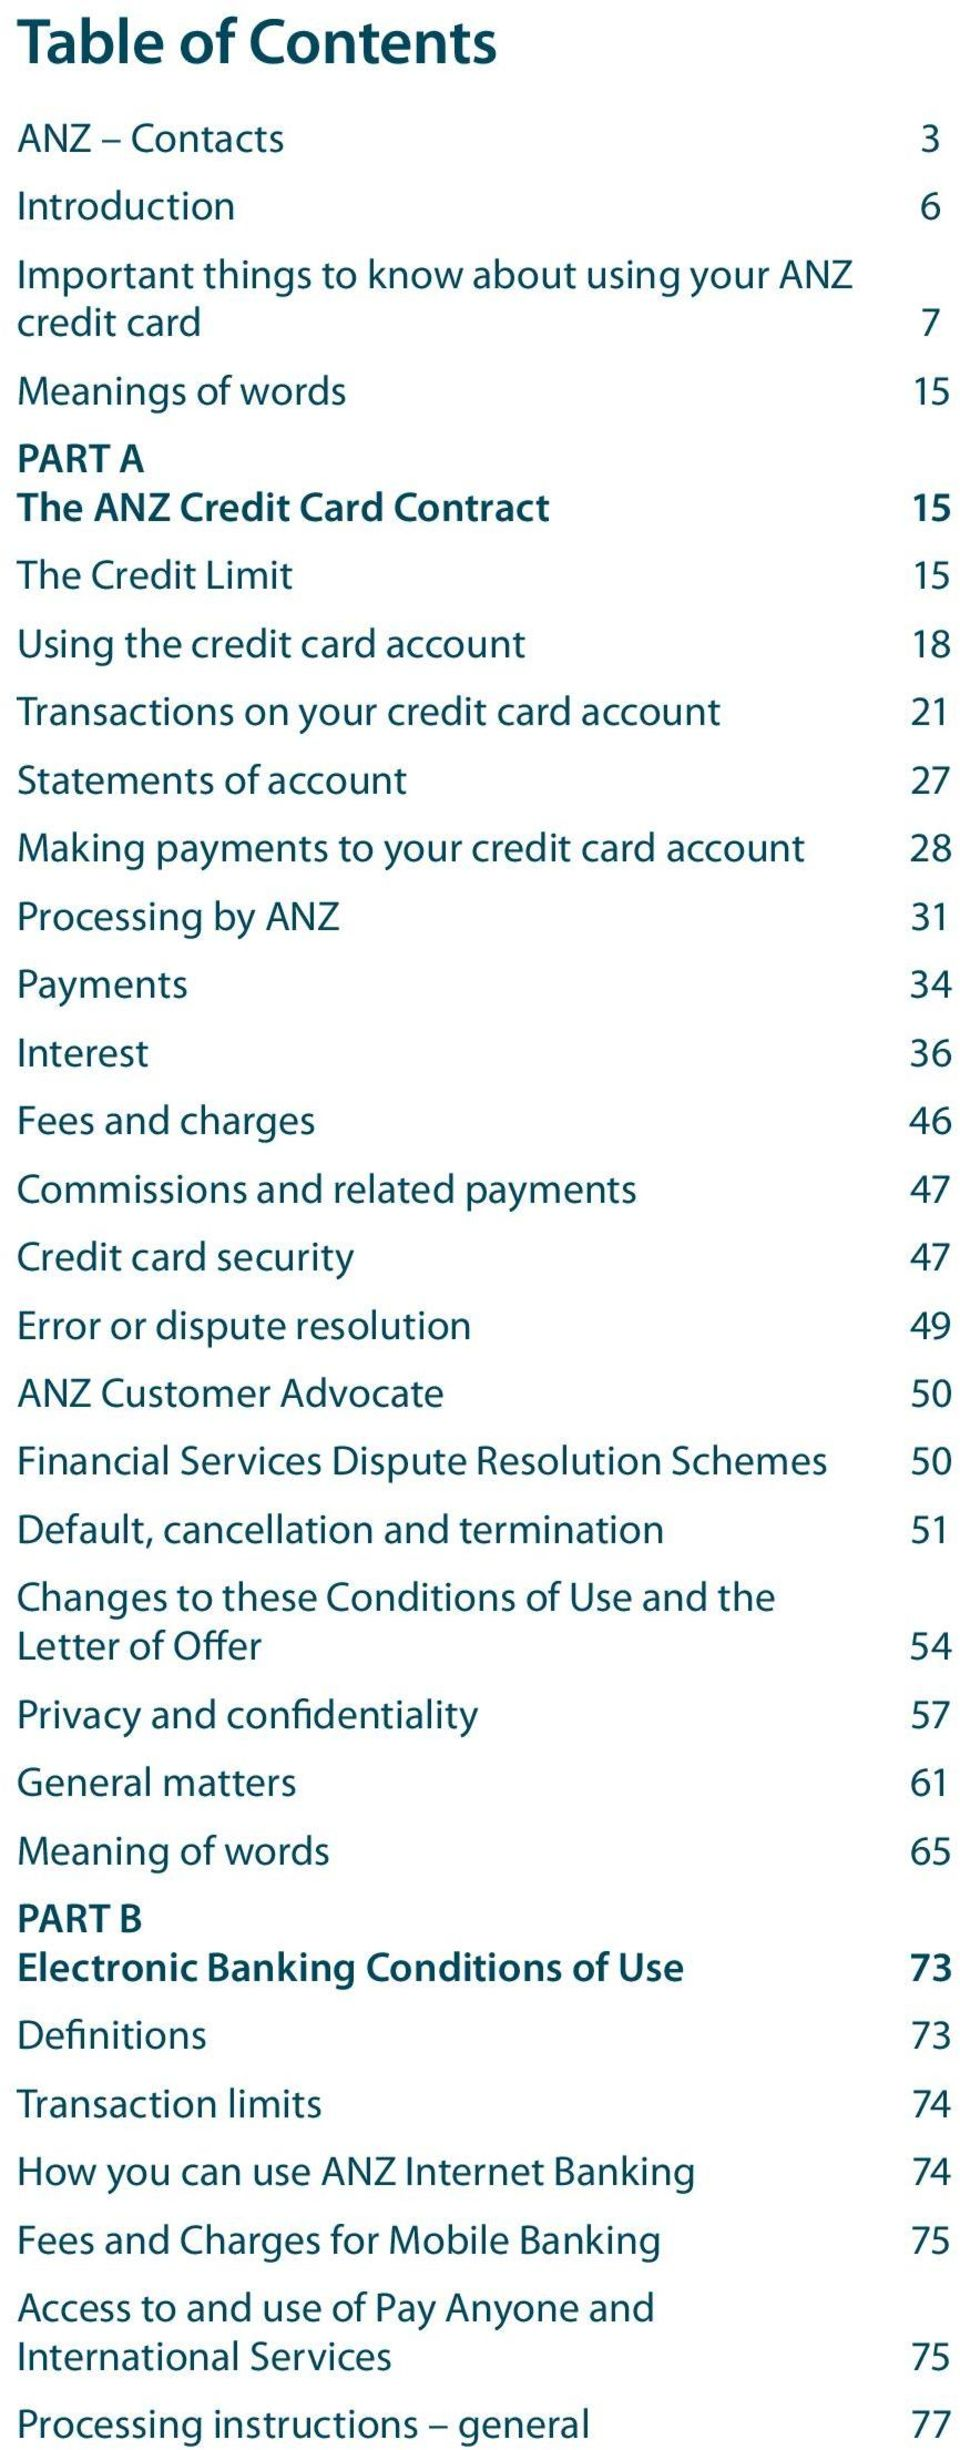 charges 46 Commissions and related payments 47 Credit card security 47 Error or dispute resolution 49 ANZ Customer Advocate 50 Financial Services Dispute Resolution Schemes 50 Default, cancellation